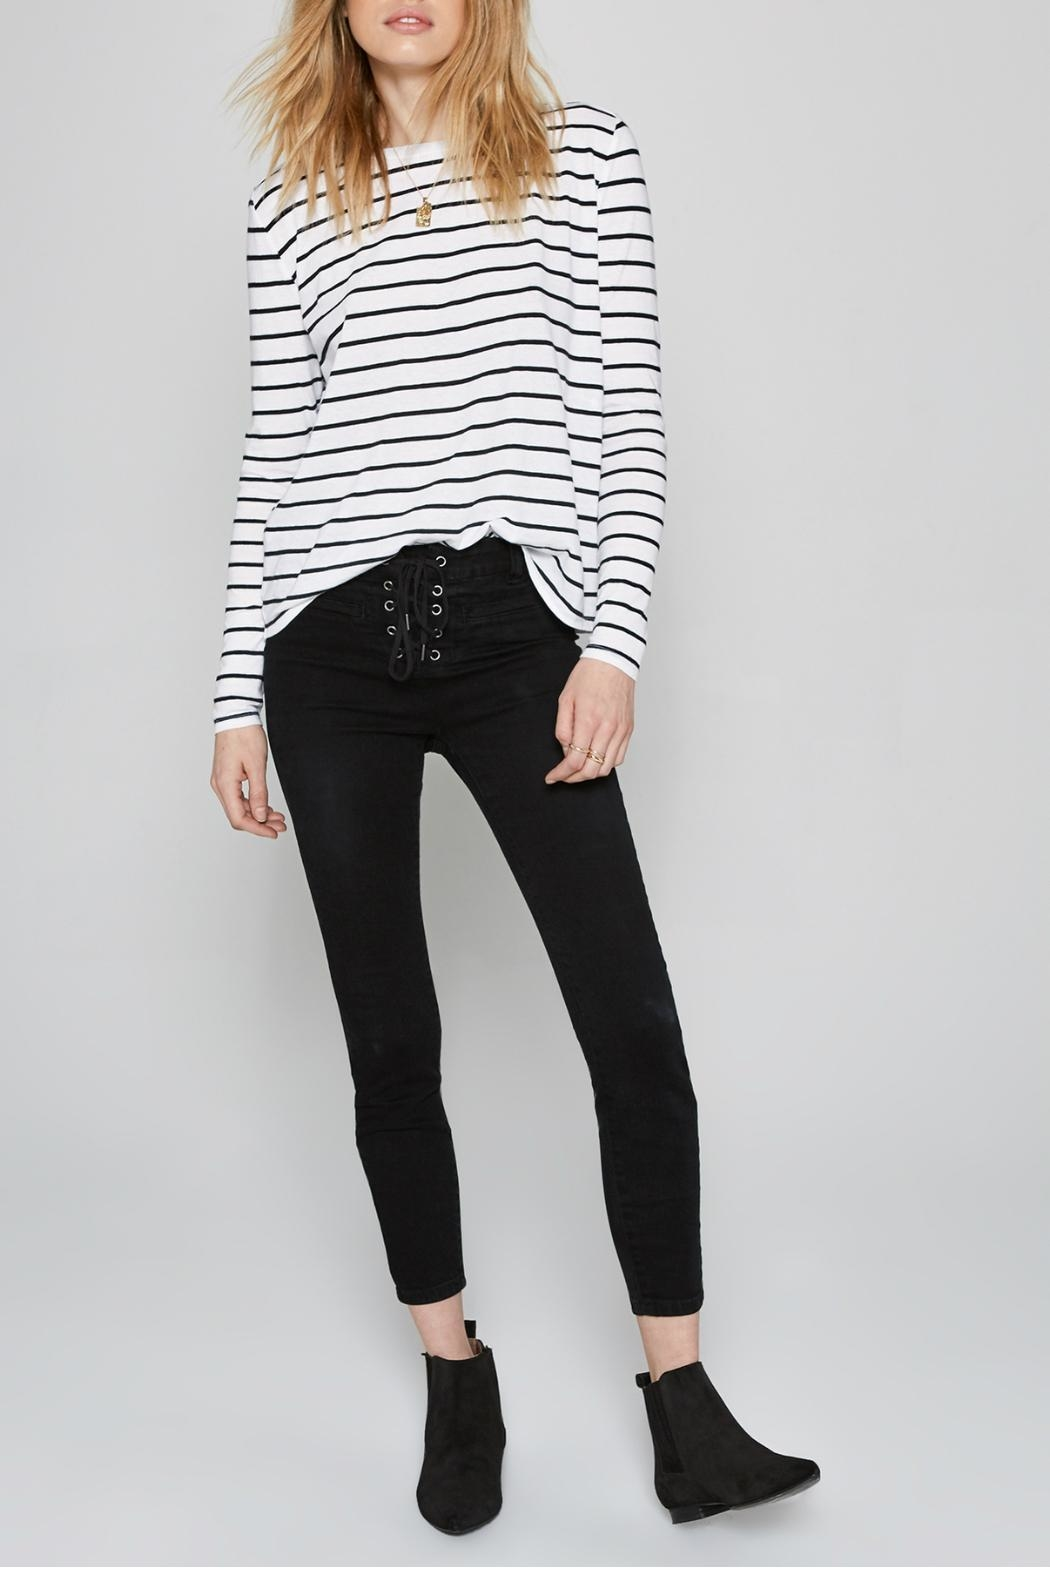 AMUSE SOCIETY Ryan Stripe Tee - Side Cropped Image